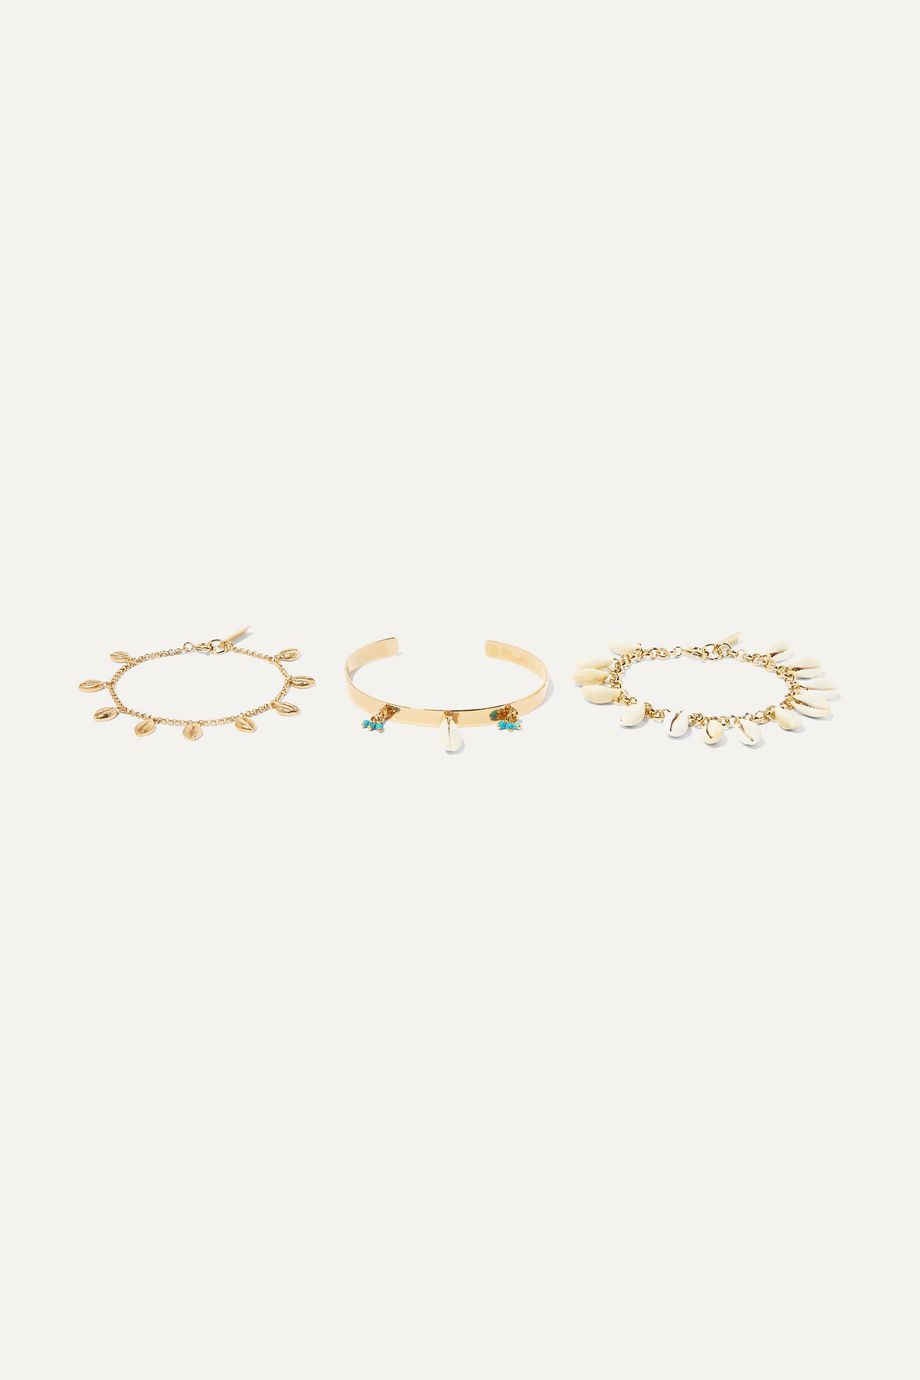 Isabel Marant Set of three gold-tone, shell and bead bracelets